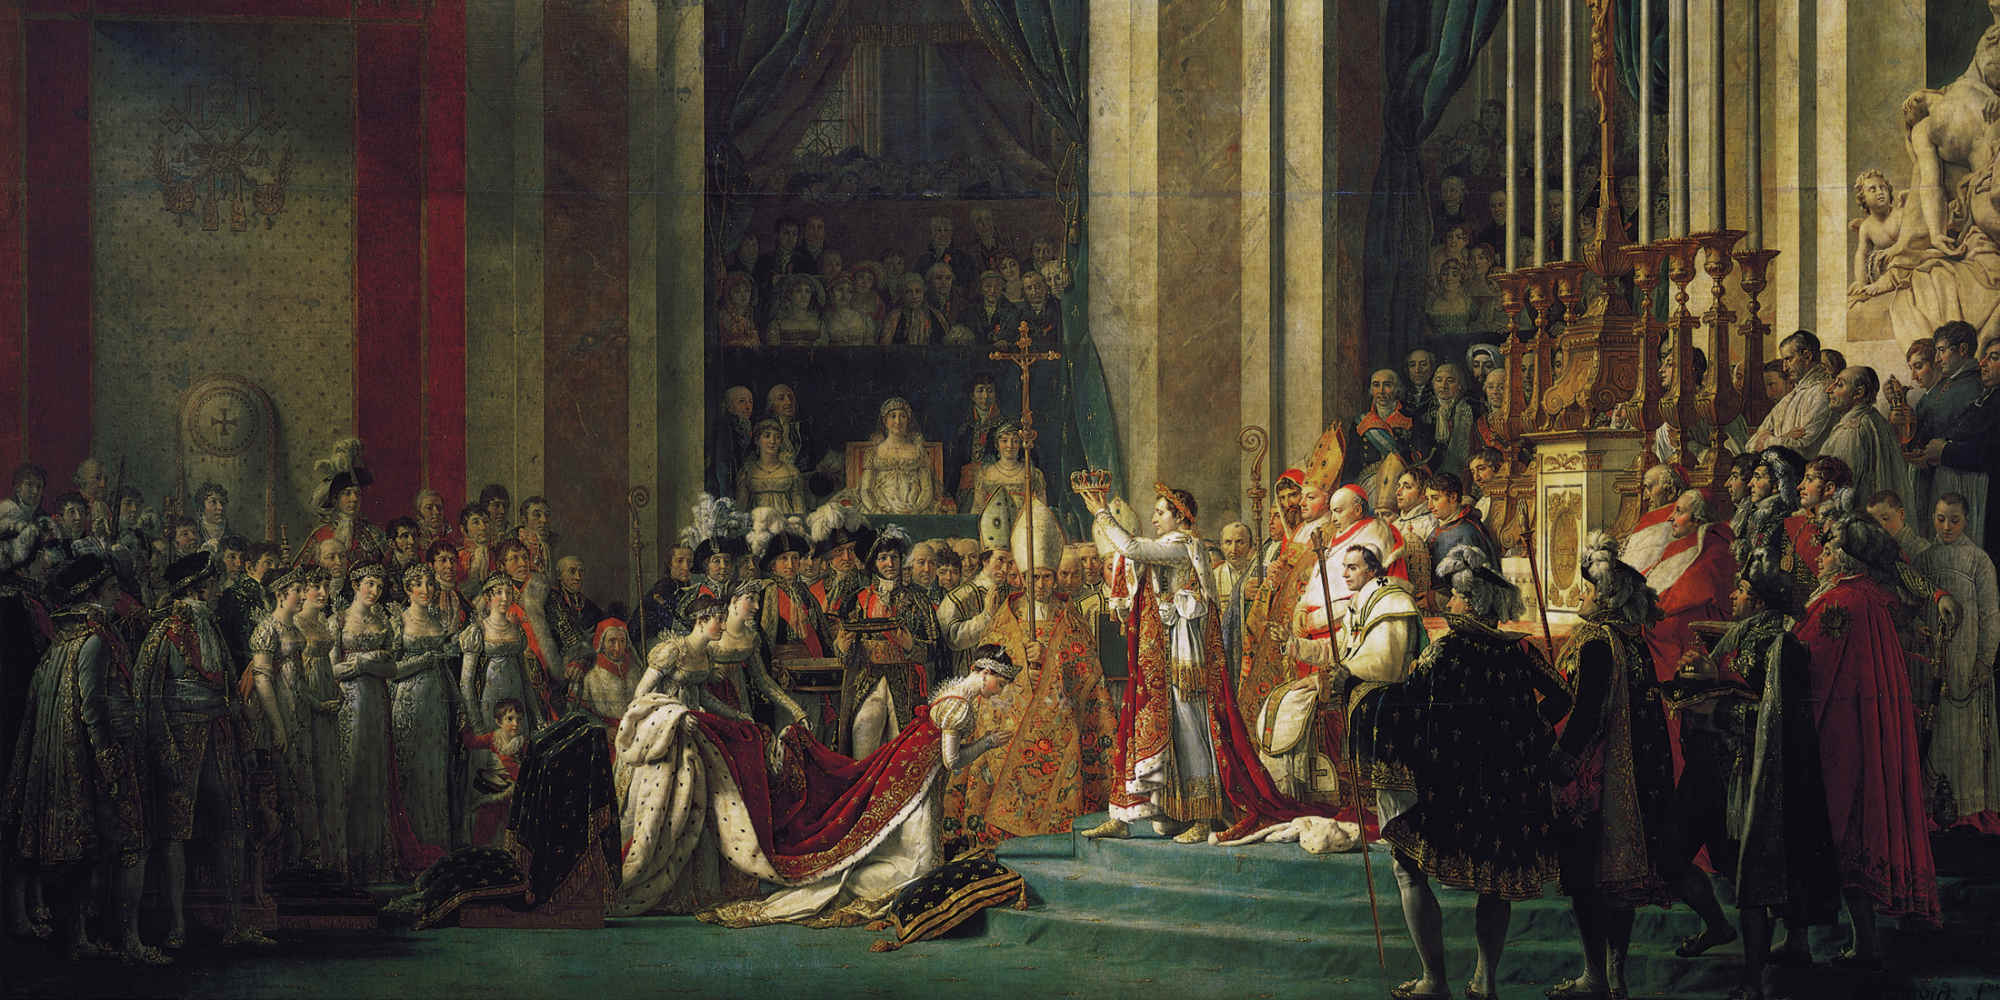 WHAT DID NAPOLEON'S ARMY EAT?